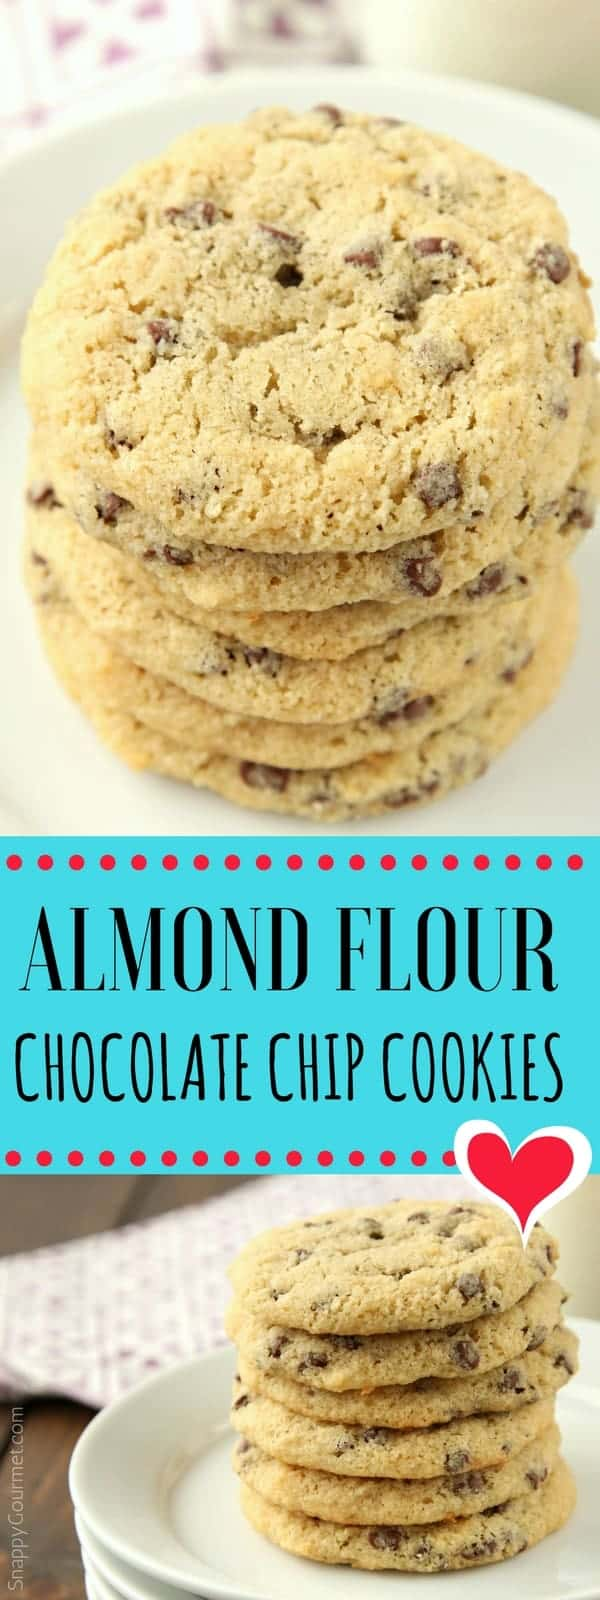 Almond Flour Chocolate Chip Cookies Recipe - easy low carb and gluten free almond flour cookies (pin)